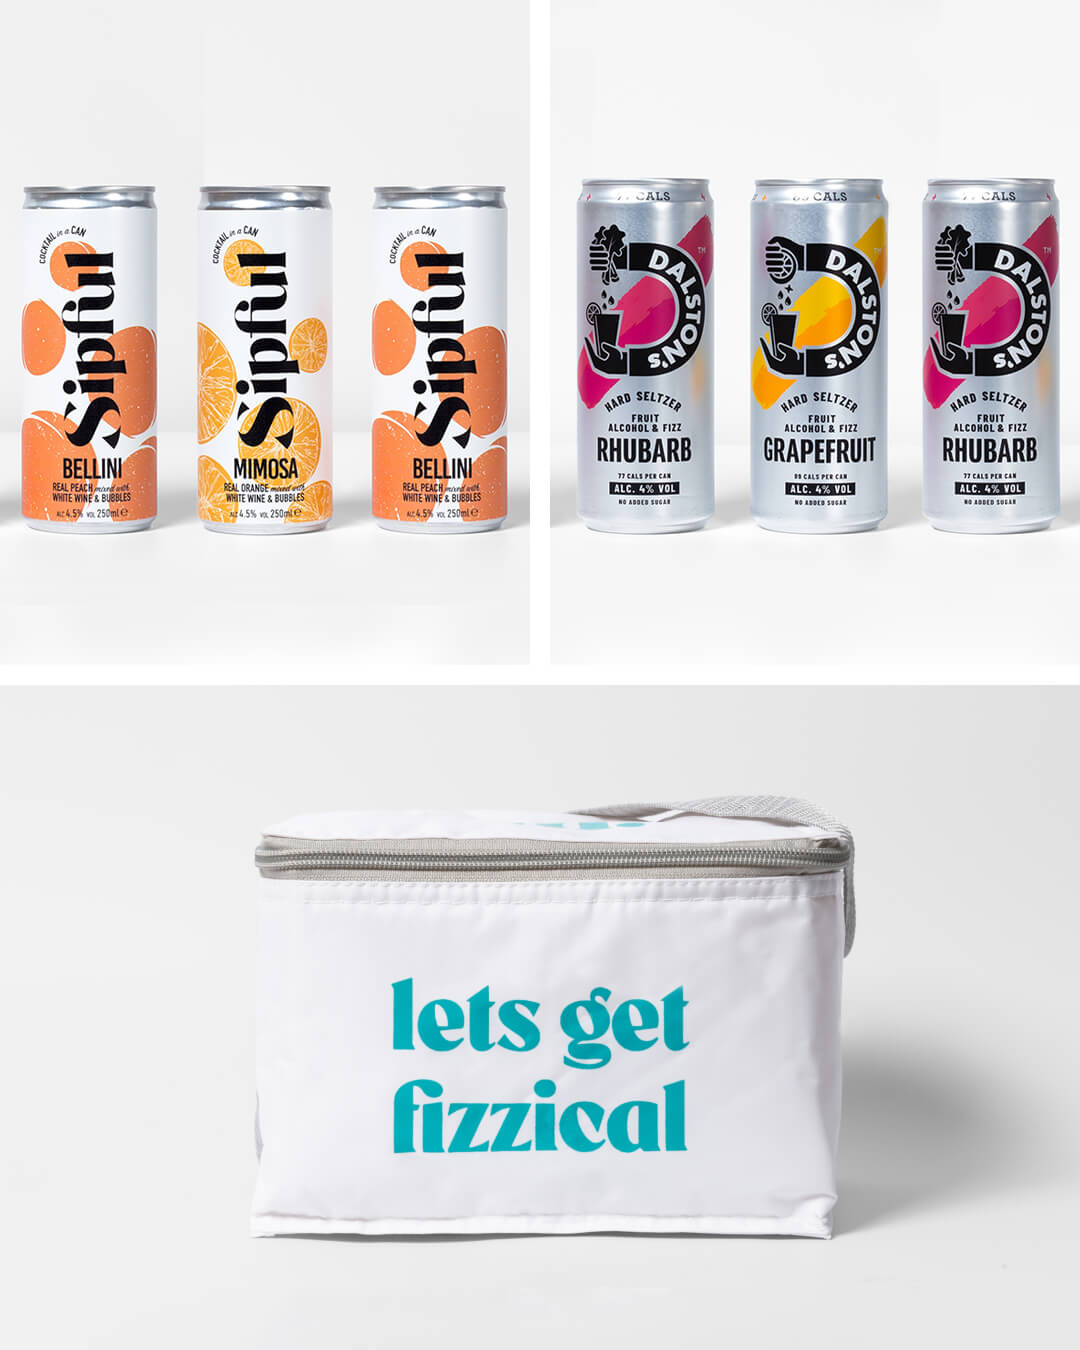 Sipful cocktail cans, Dalston's hard seltzer cans & ta. cool bag